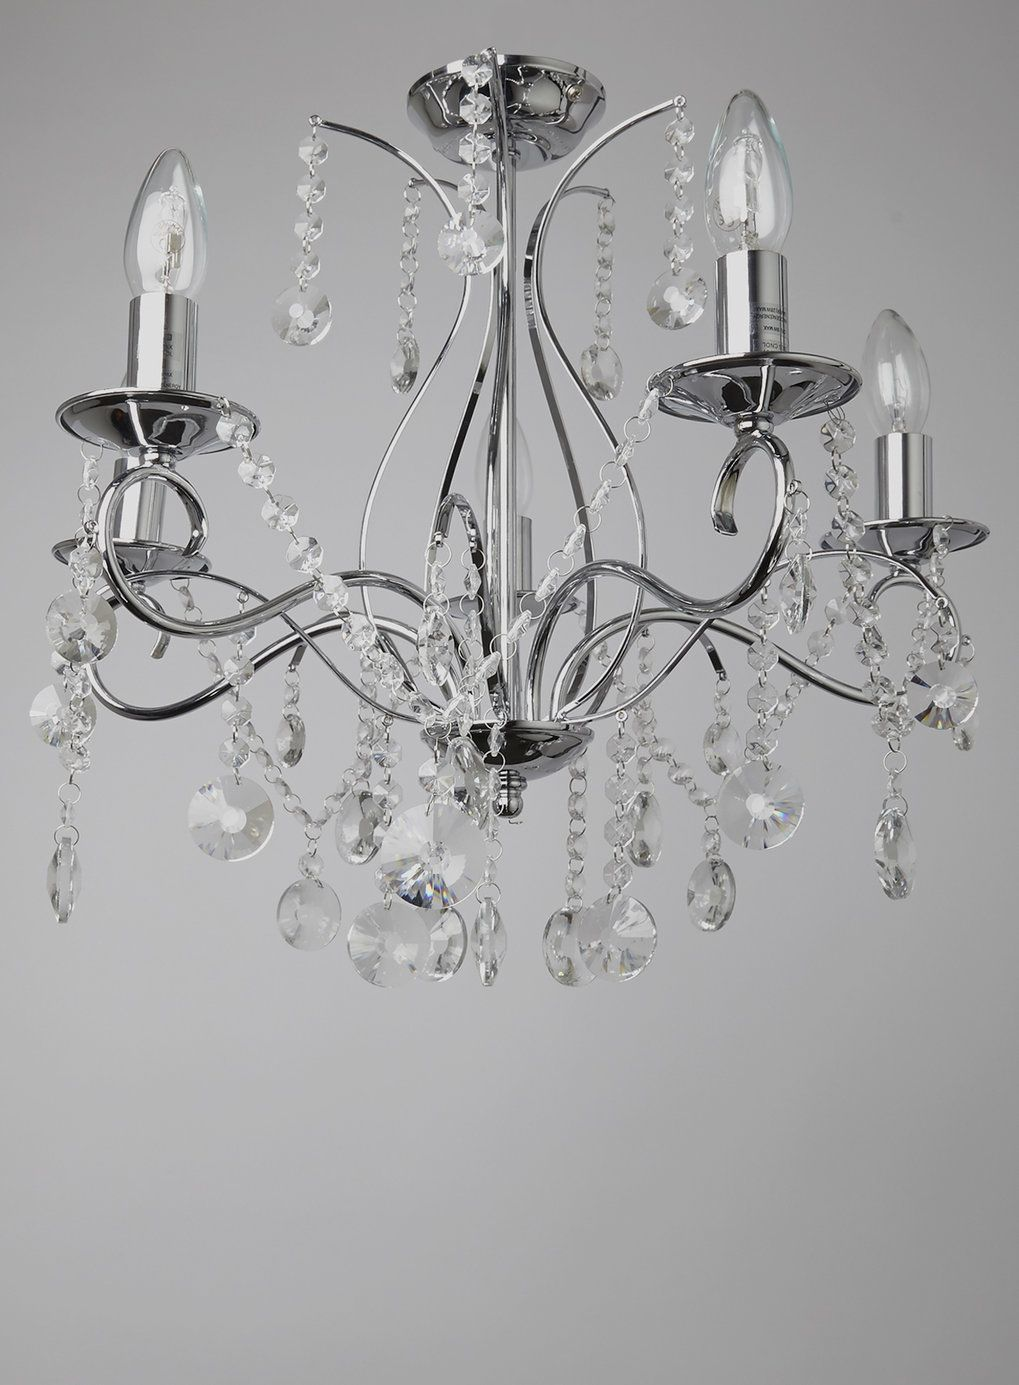 Chrome connie 5 light chandelier bhs bathrooms pinterest bhs chrome connie 5 light chandelier bhs arubaitofo Image collections